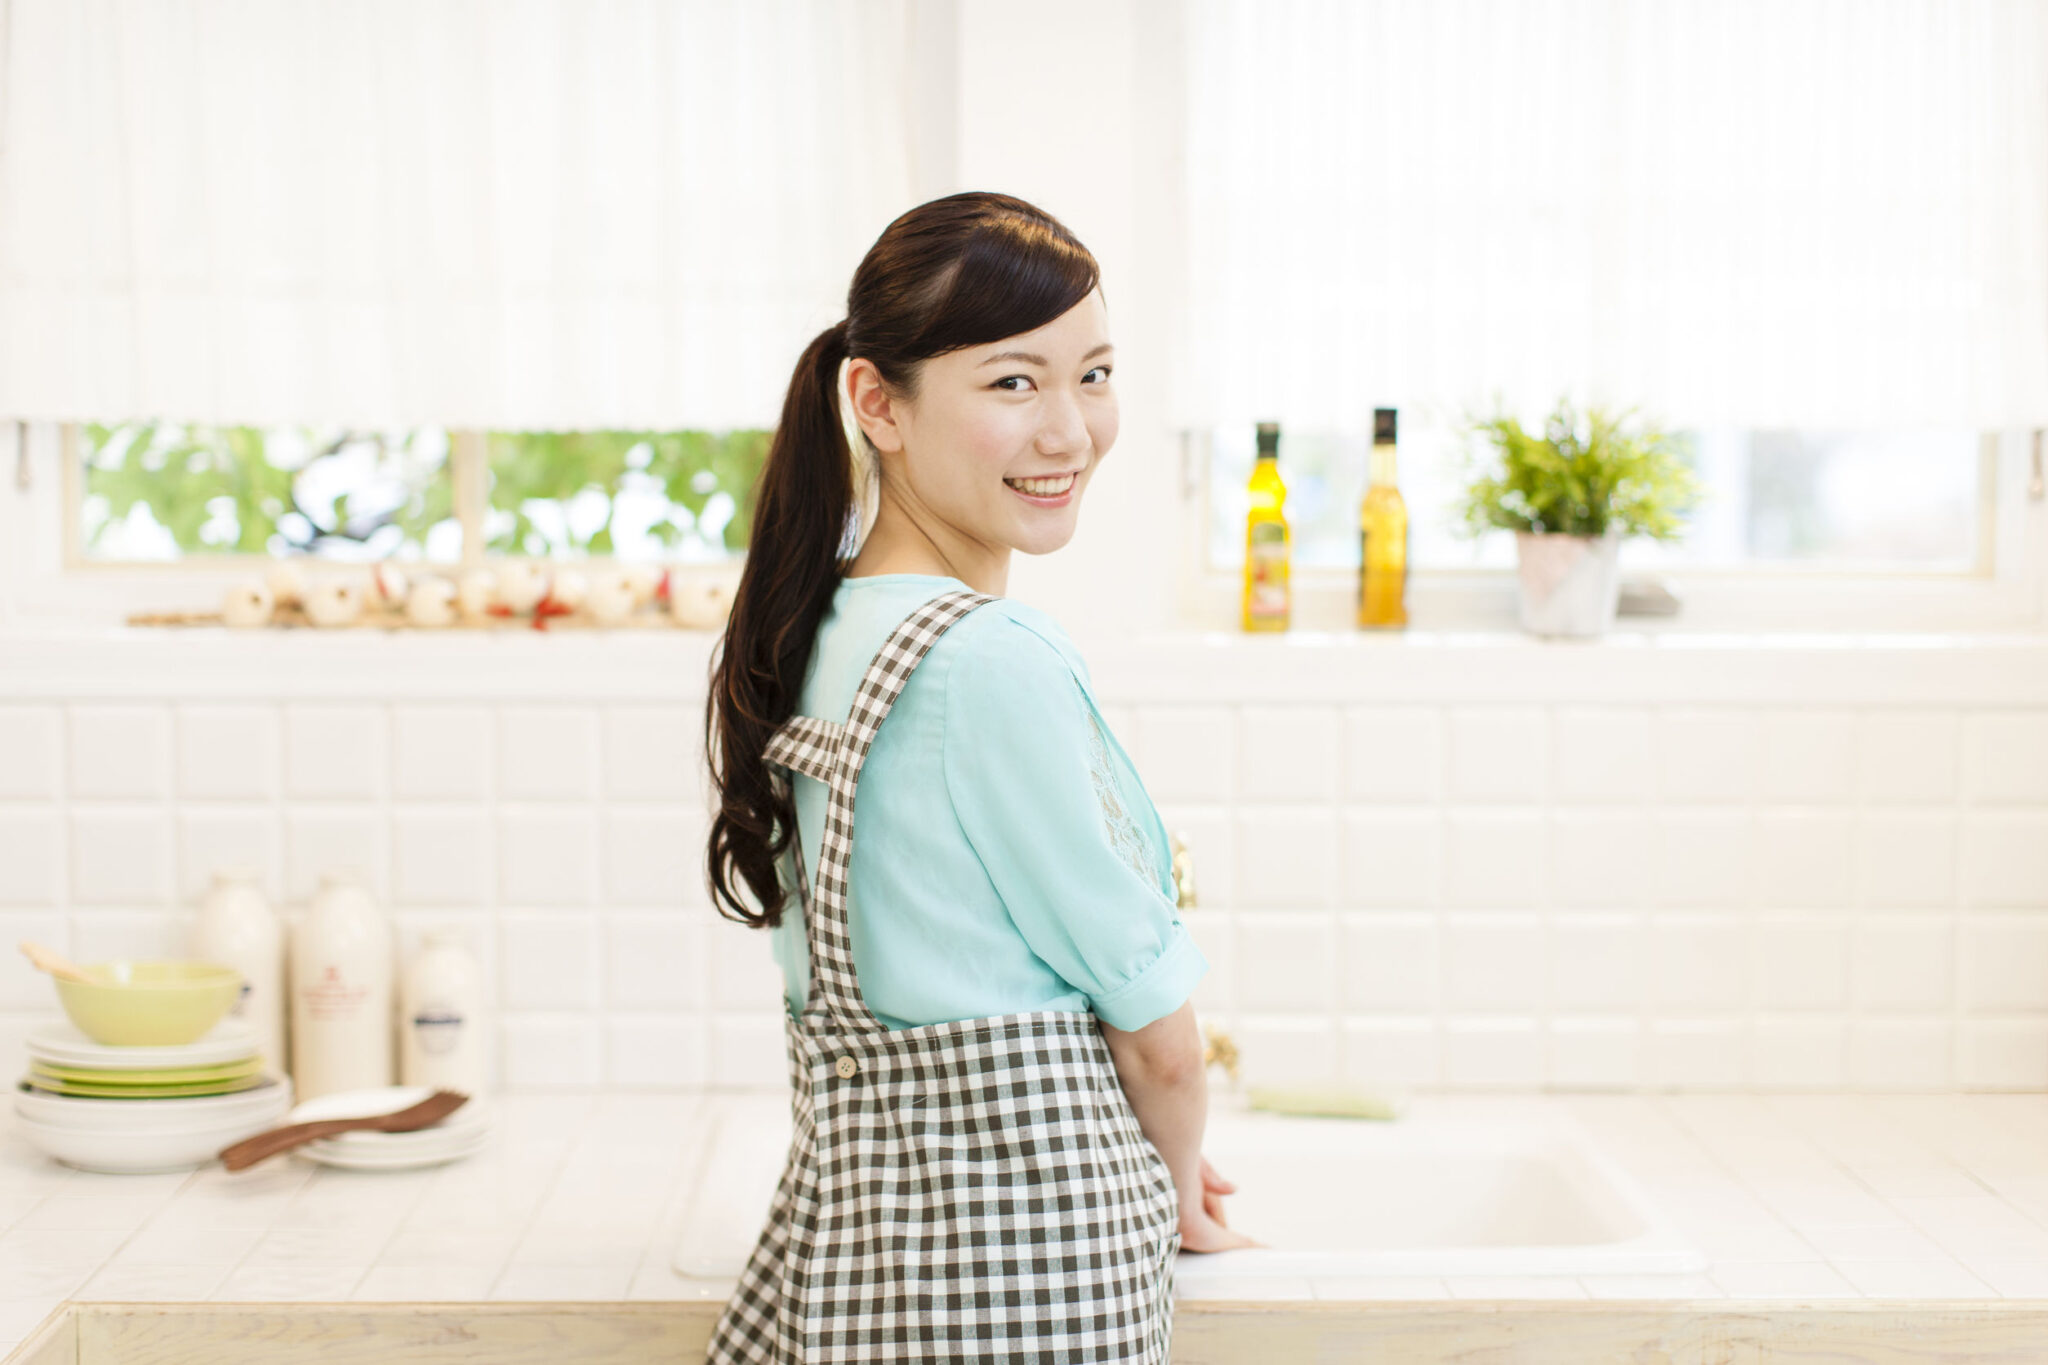 Nanny Housekeeper at the sink